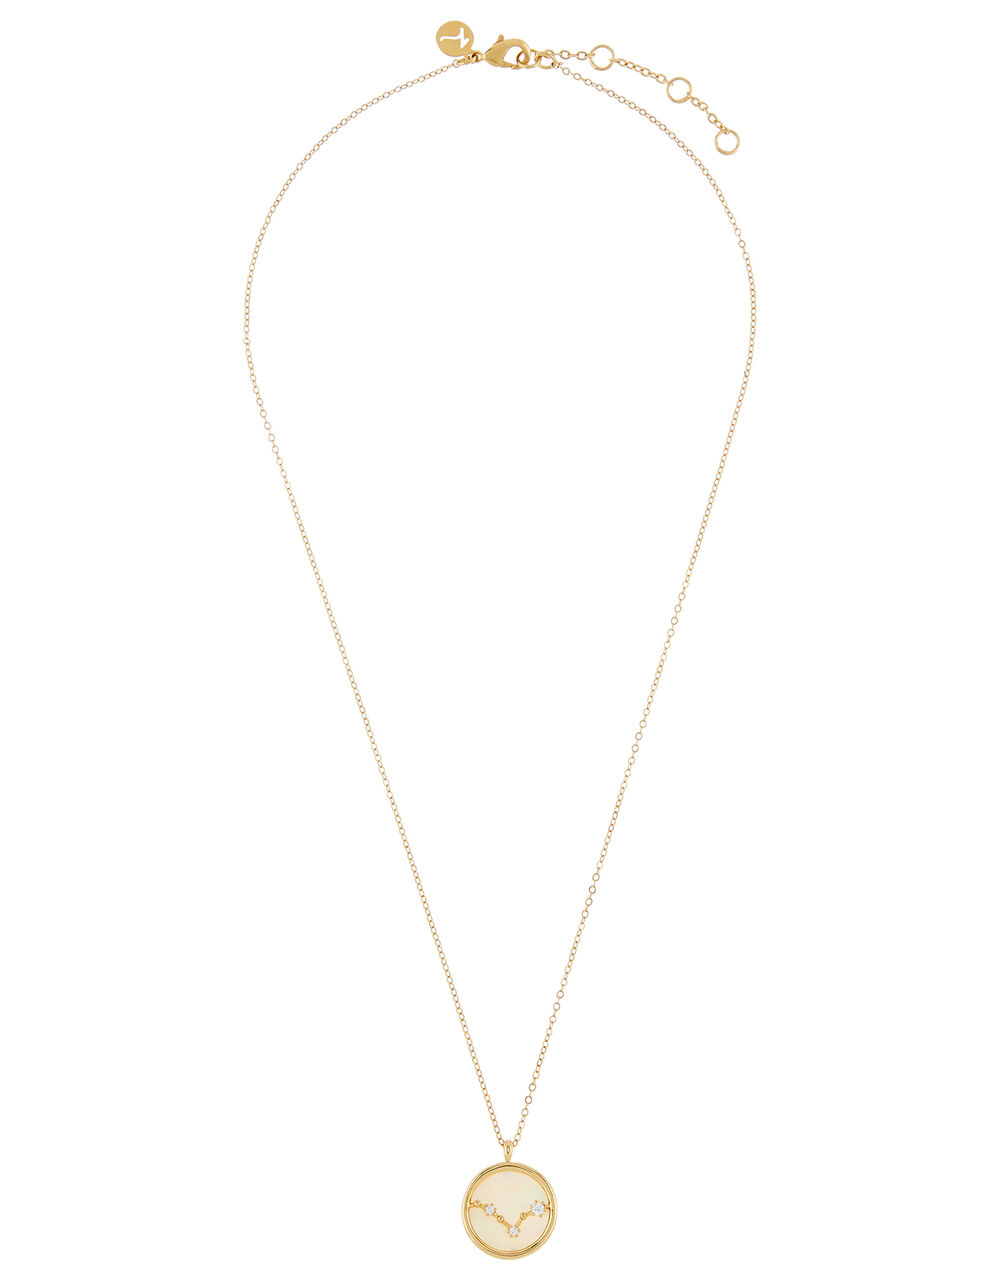 Gold-Plated Constellation Necklace - Pisces, , large